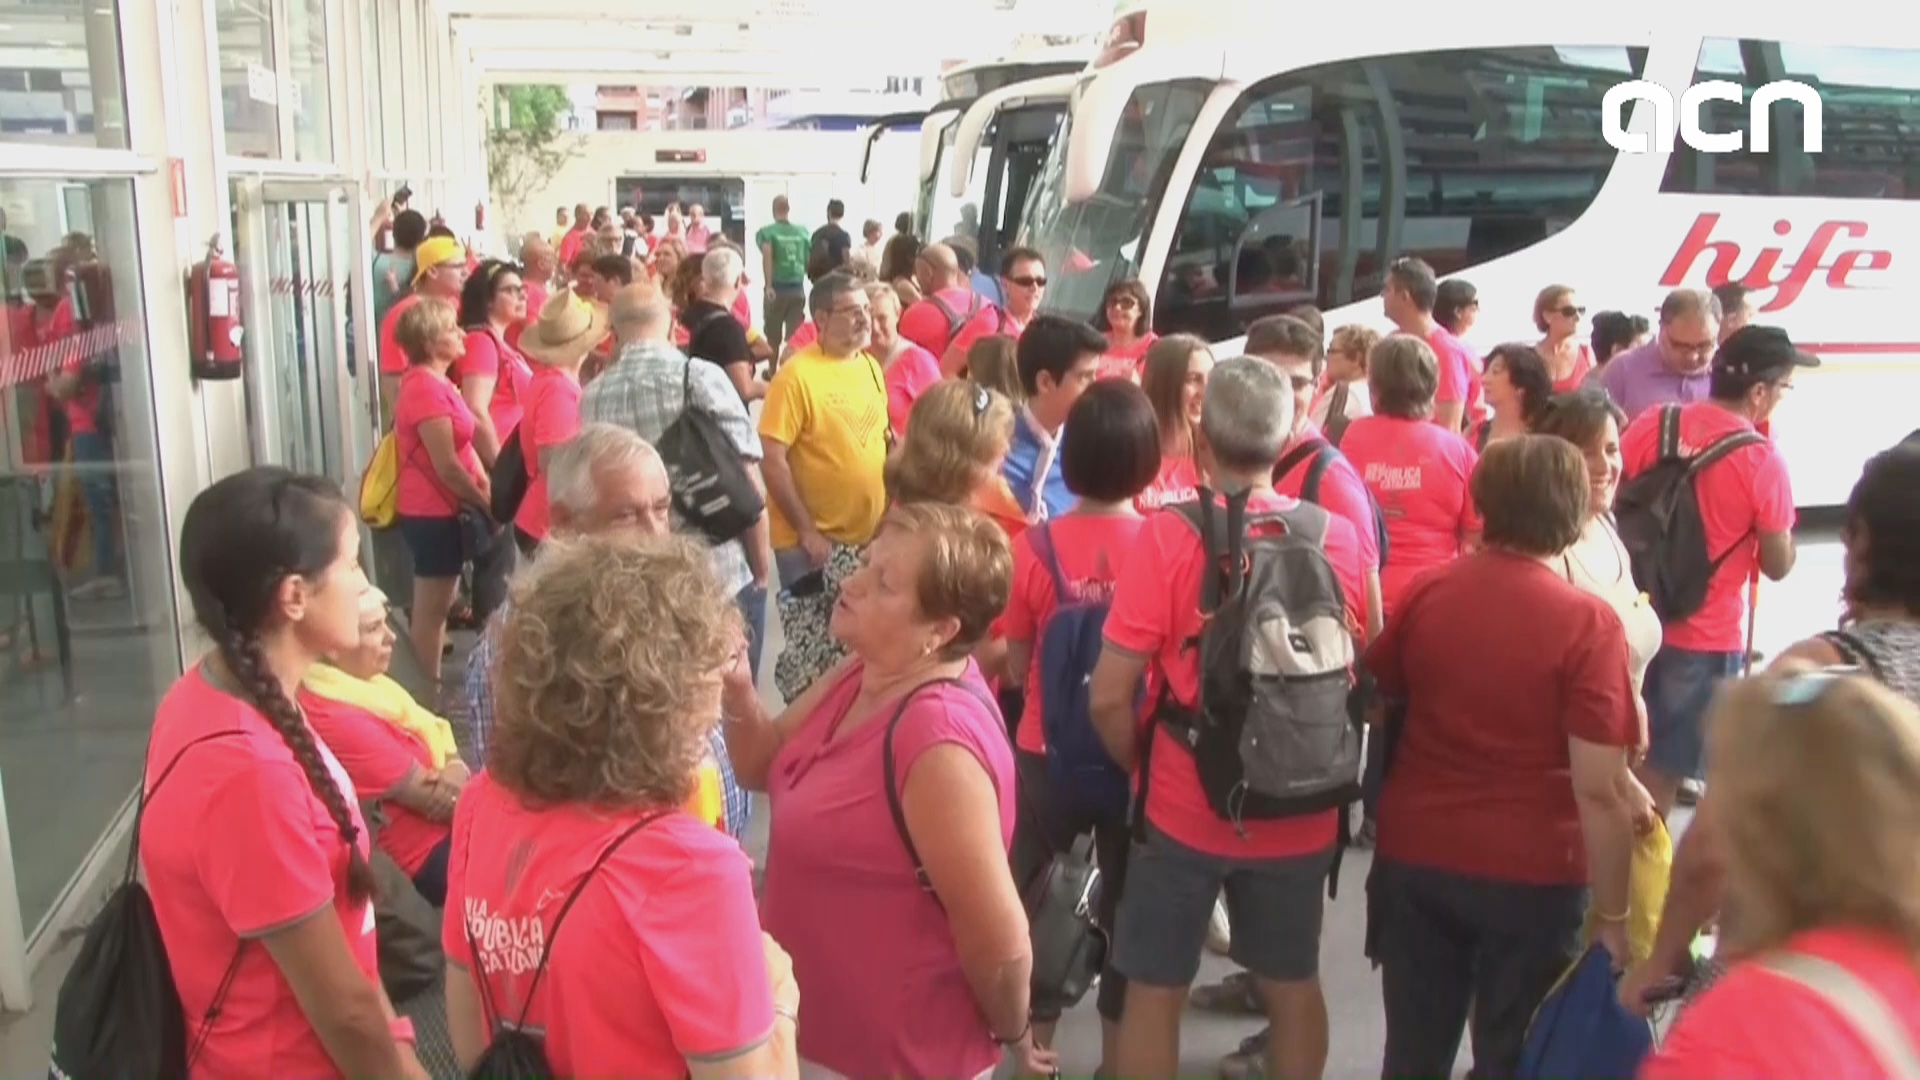 Hundreds of buses carrying pro-independence supporters make way to Barcelona for protest